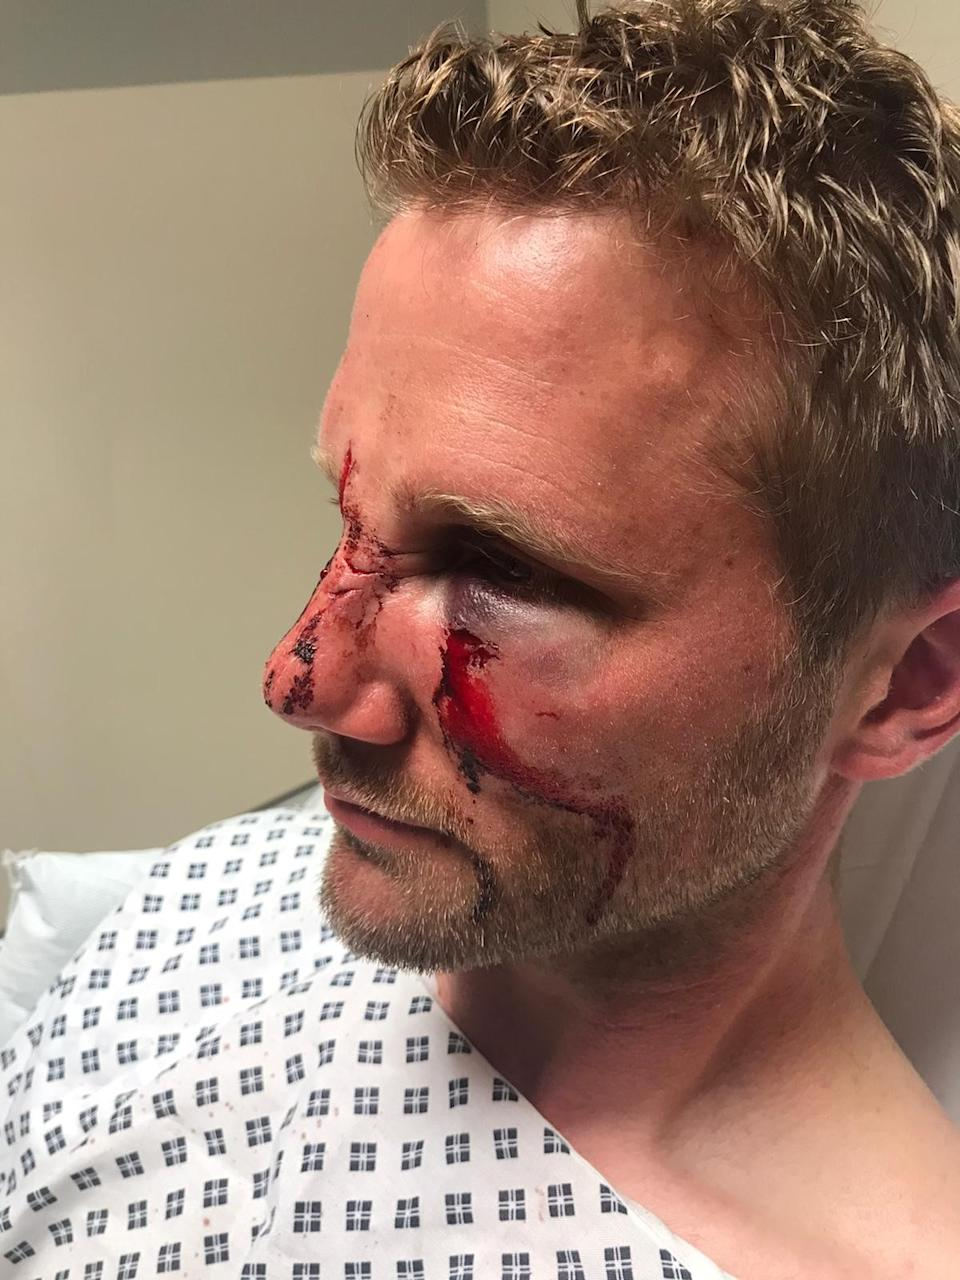 PC Dan Lumley has been left with permanent scarring to his face. (Police)